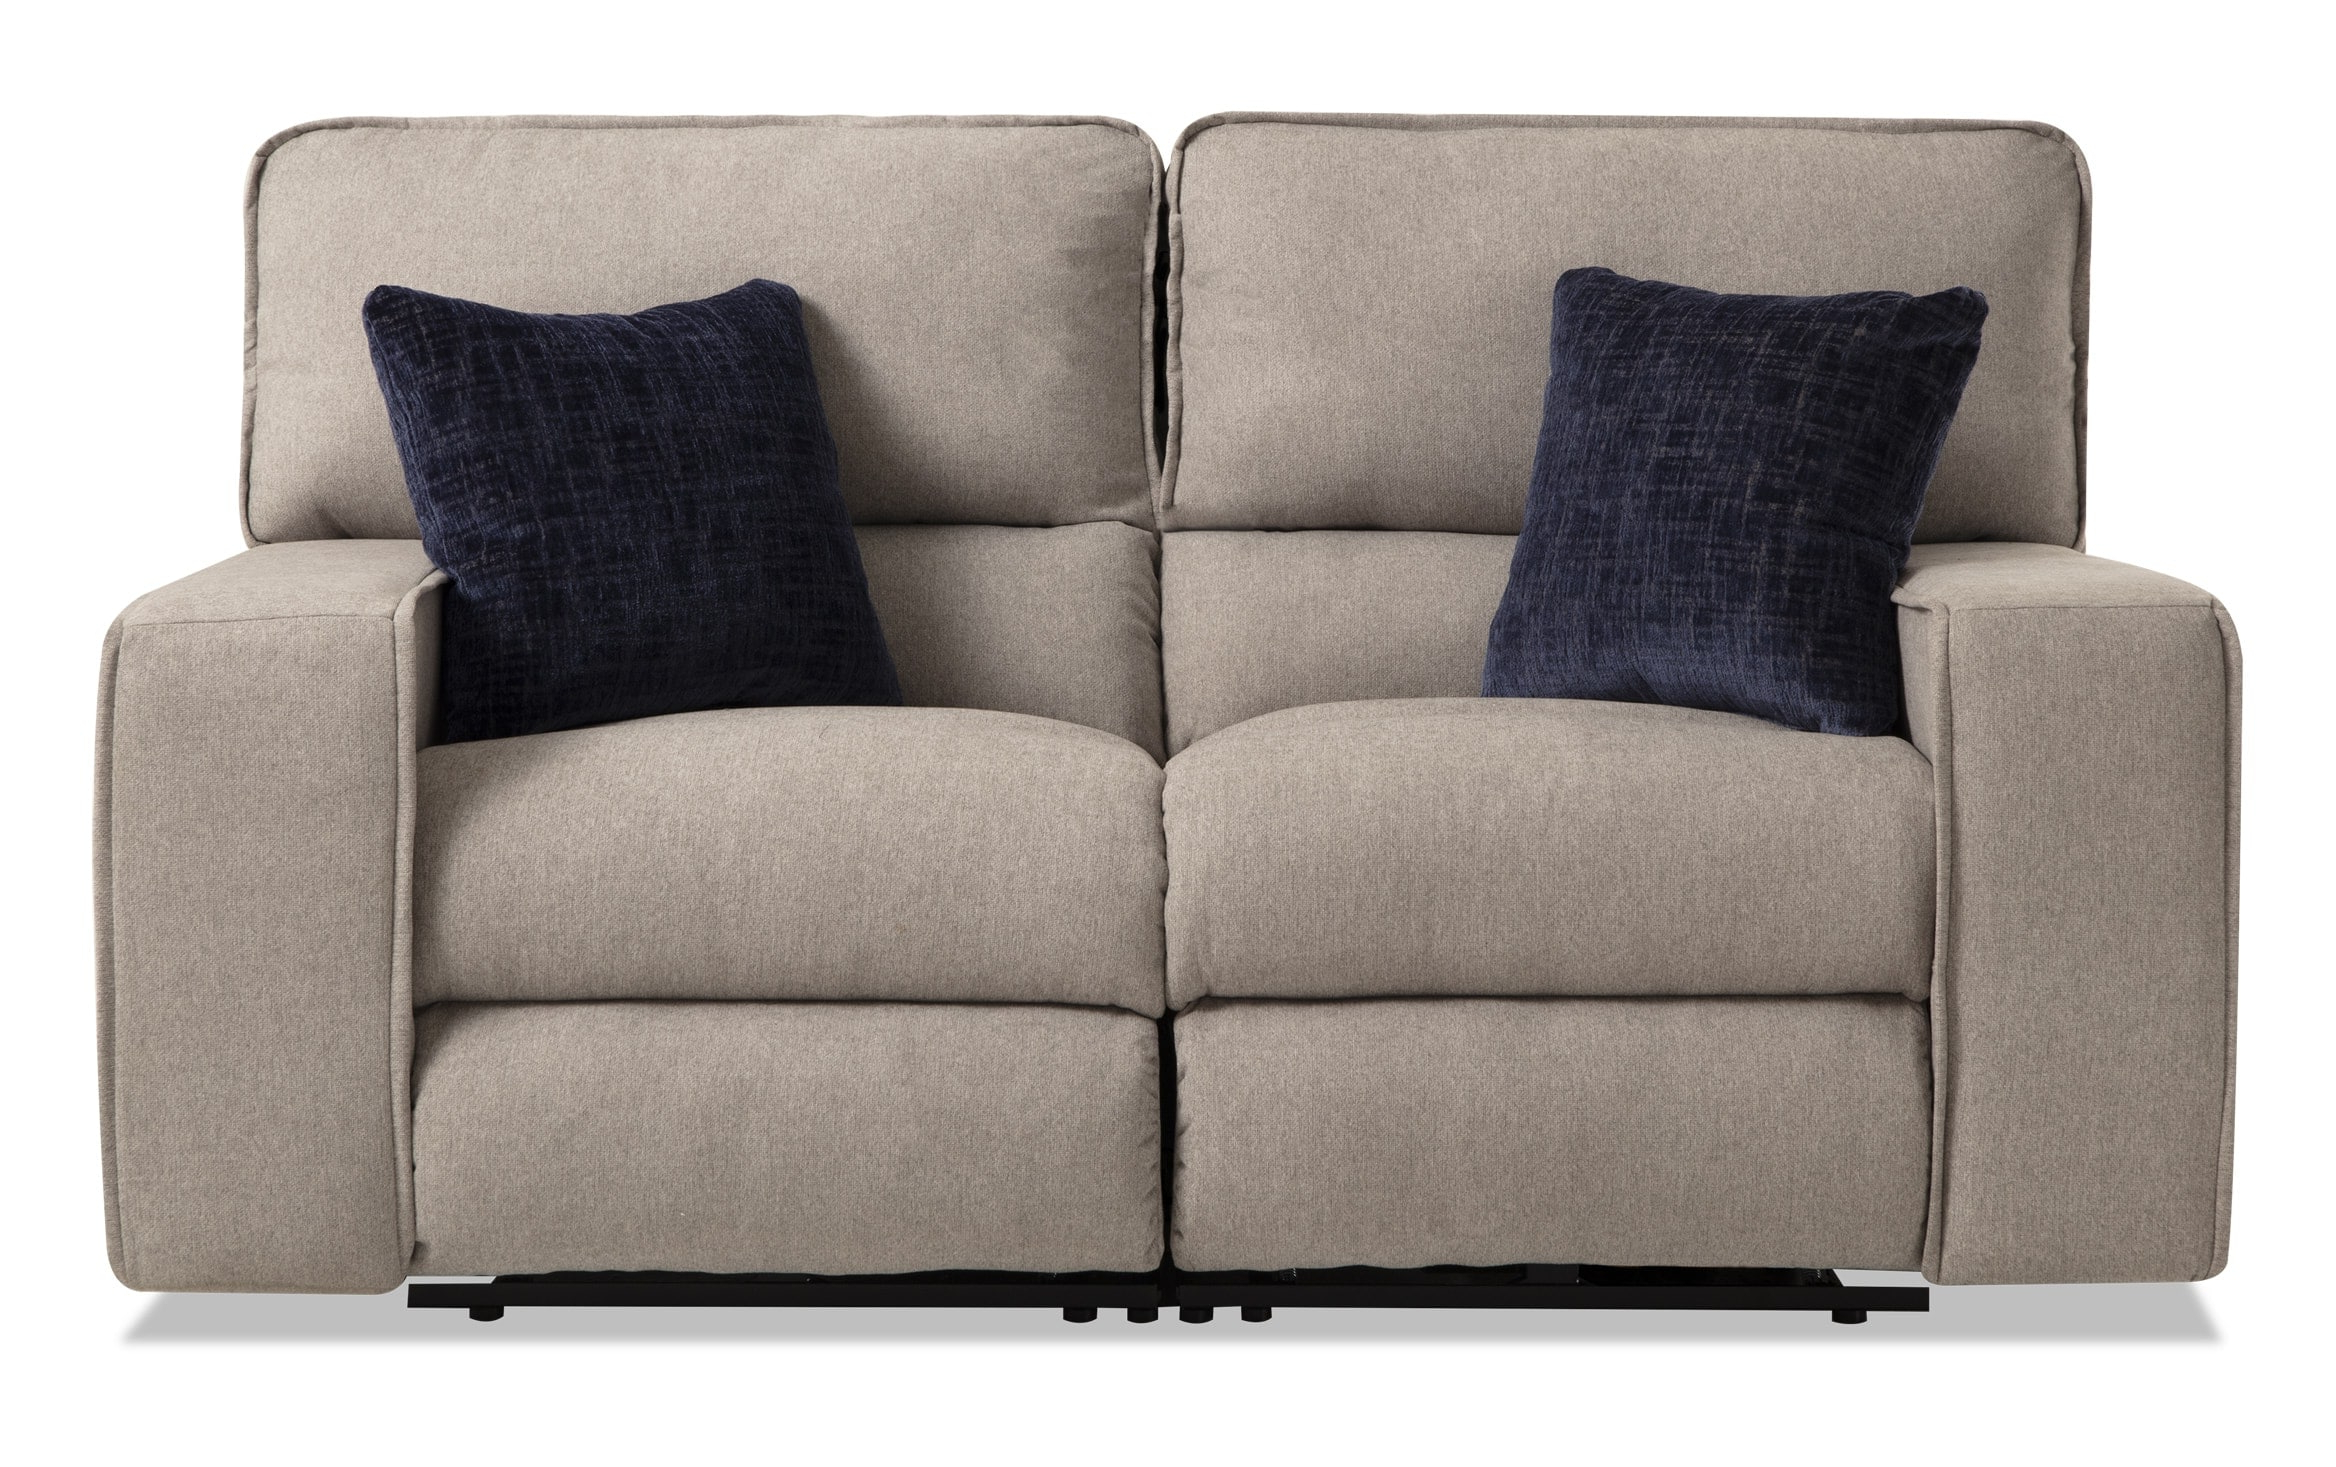 Most Popular Bobs Furniture Reclining Sofas – Latest Sofa Pictures Regarding Trailblazer Gray Leather Power Reclining Sofas (View 10 of 15)